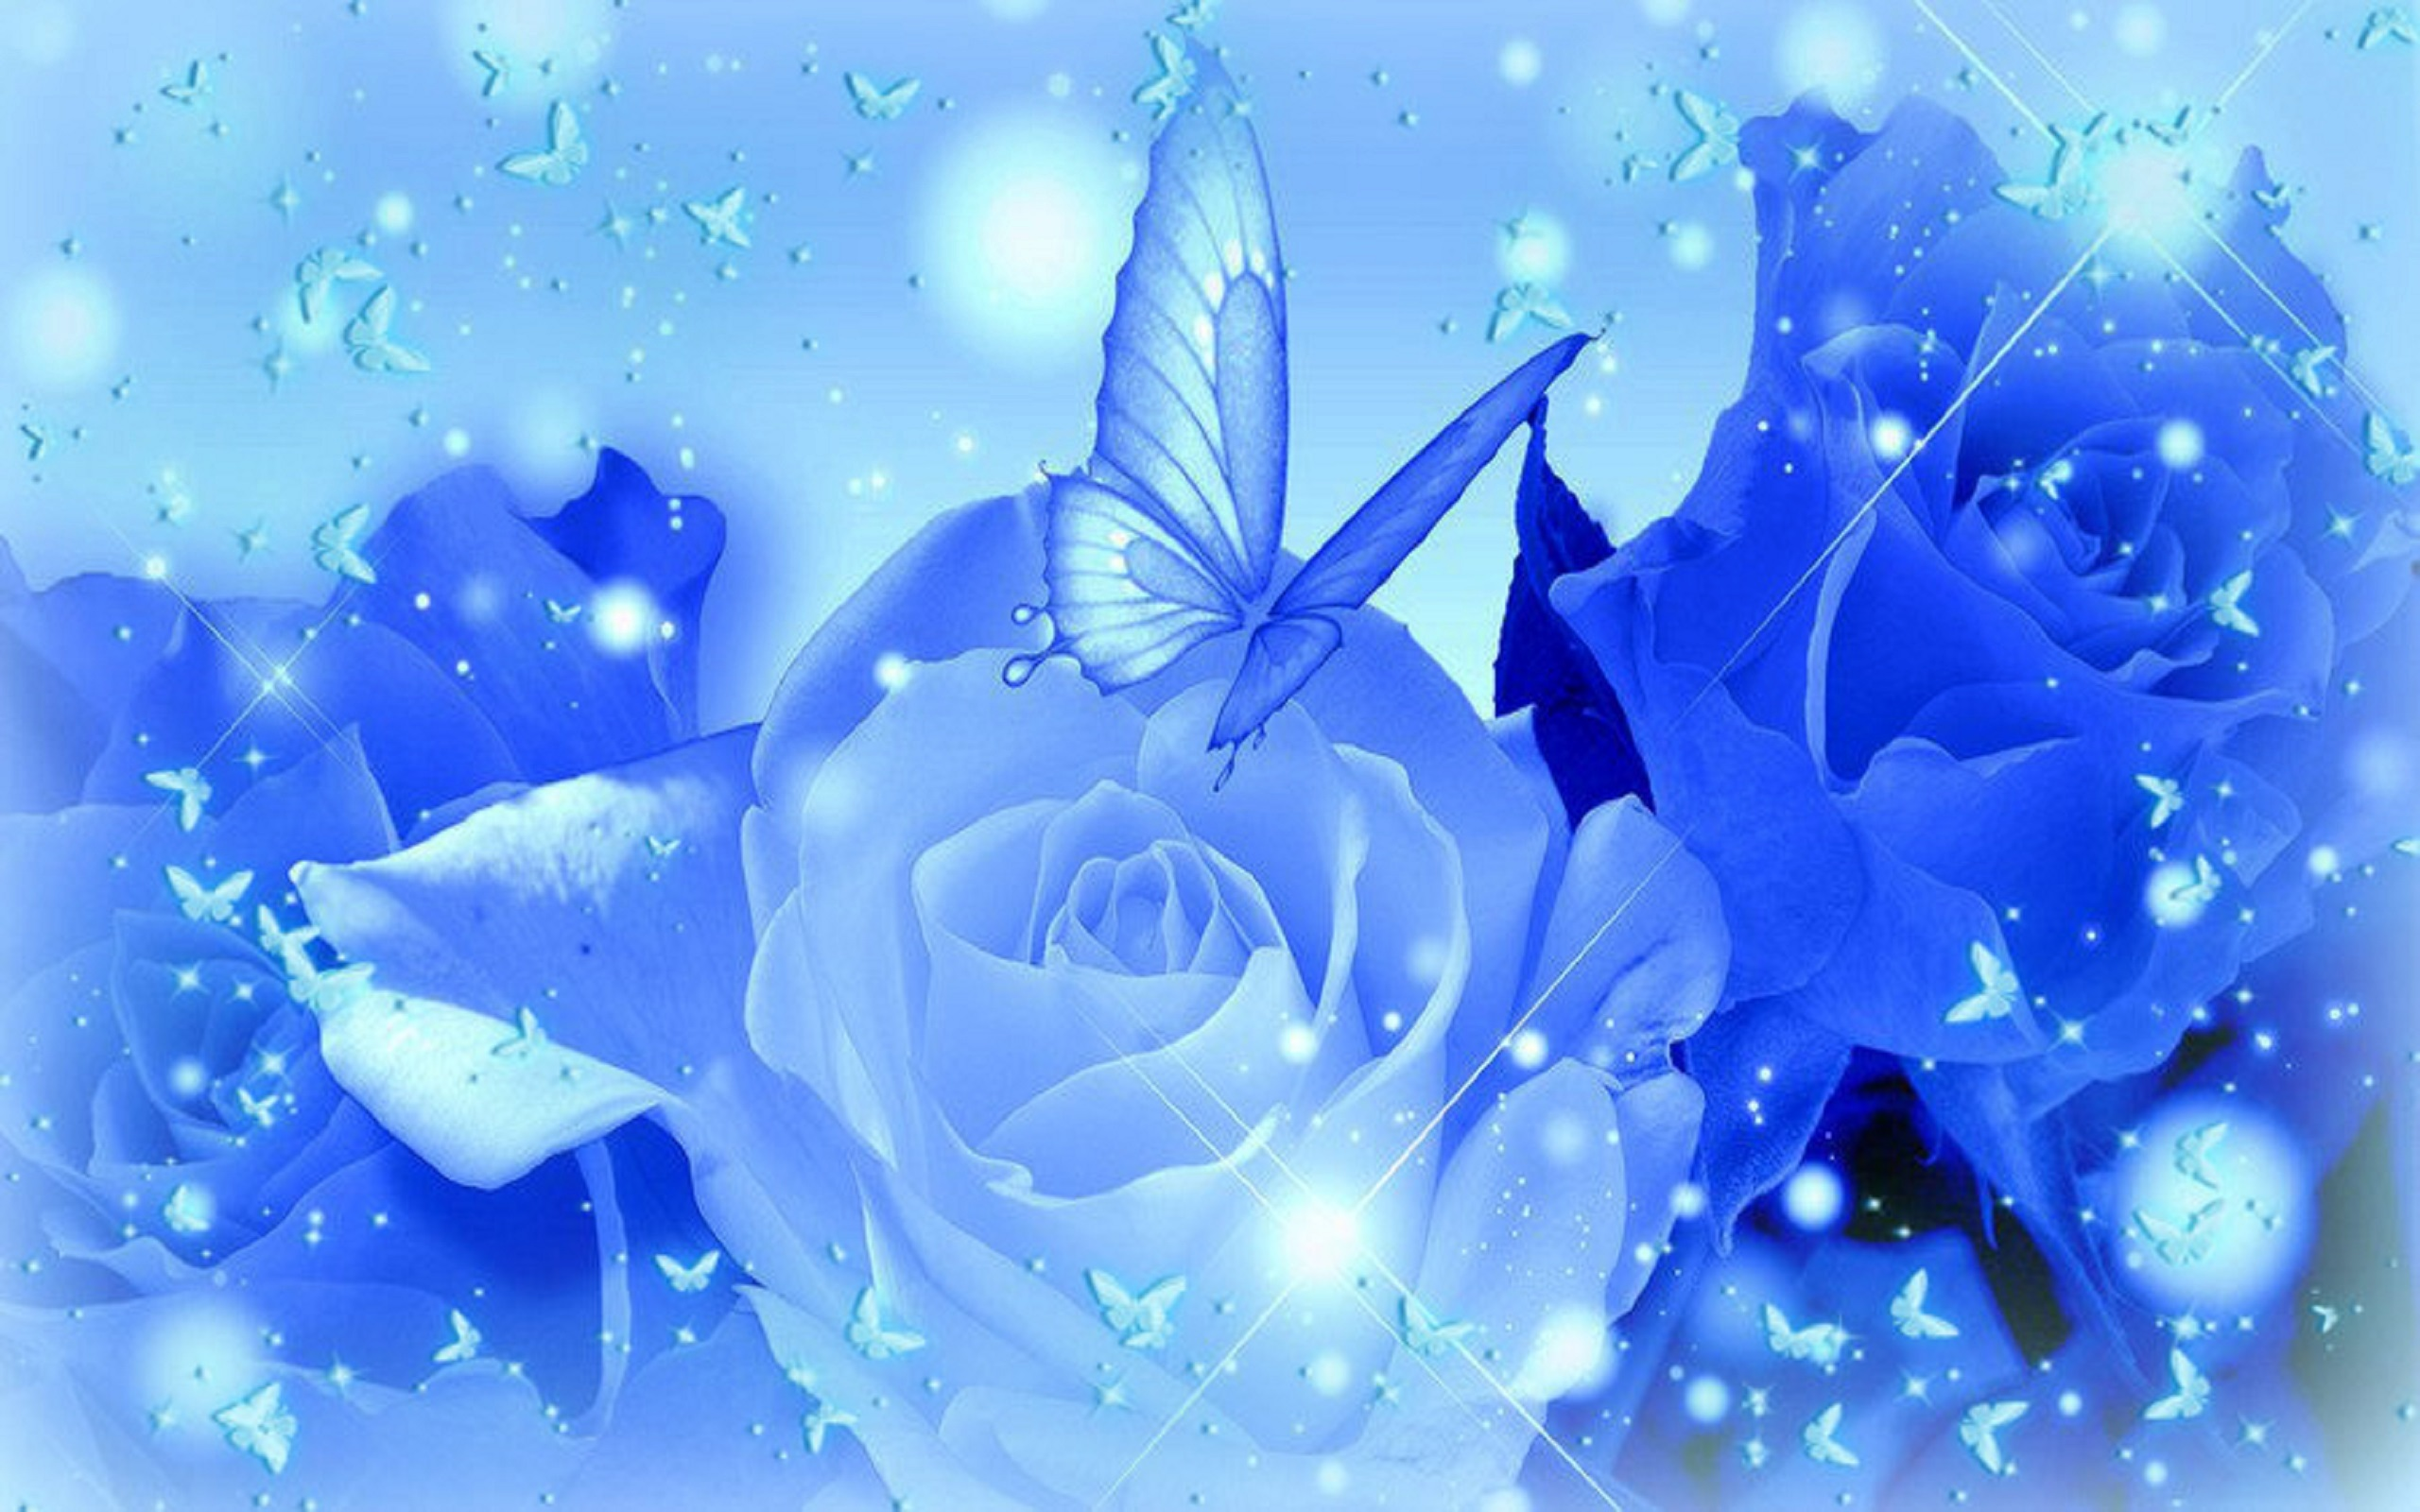 Cute Blue Roses Images